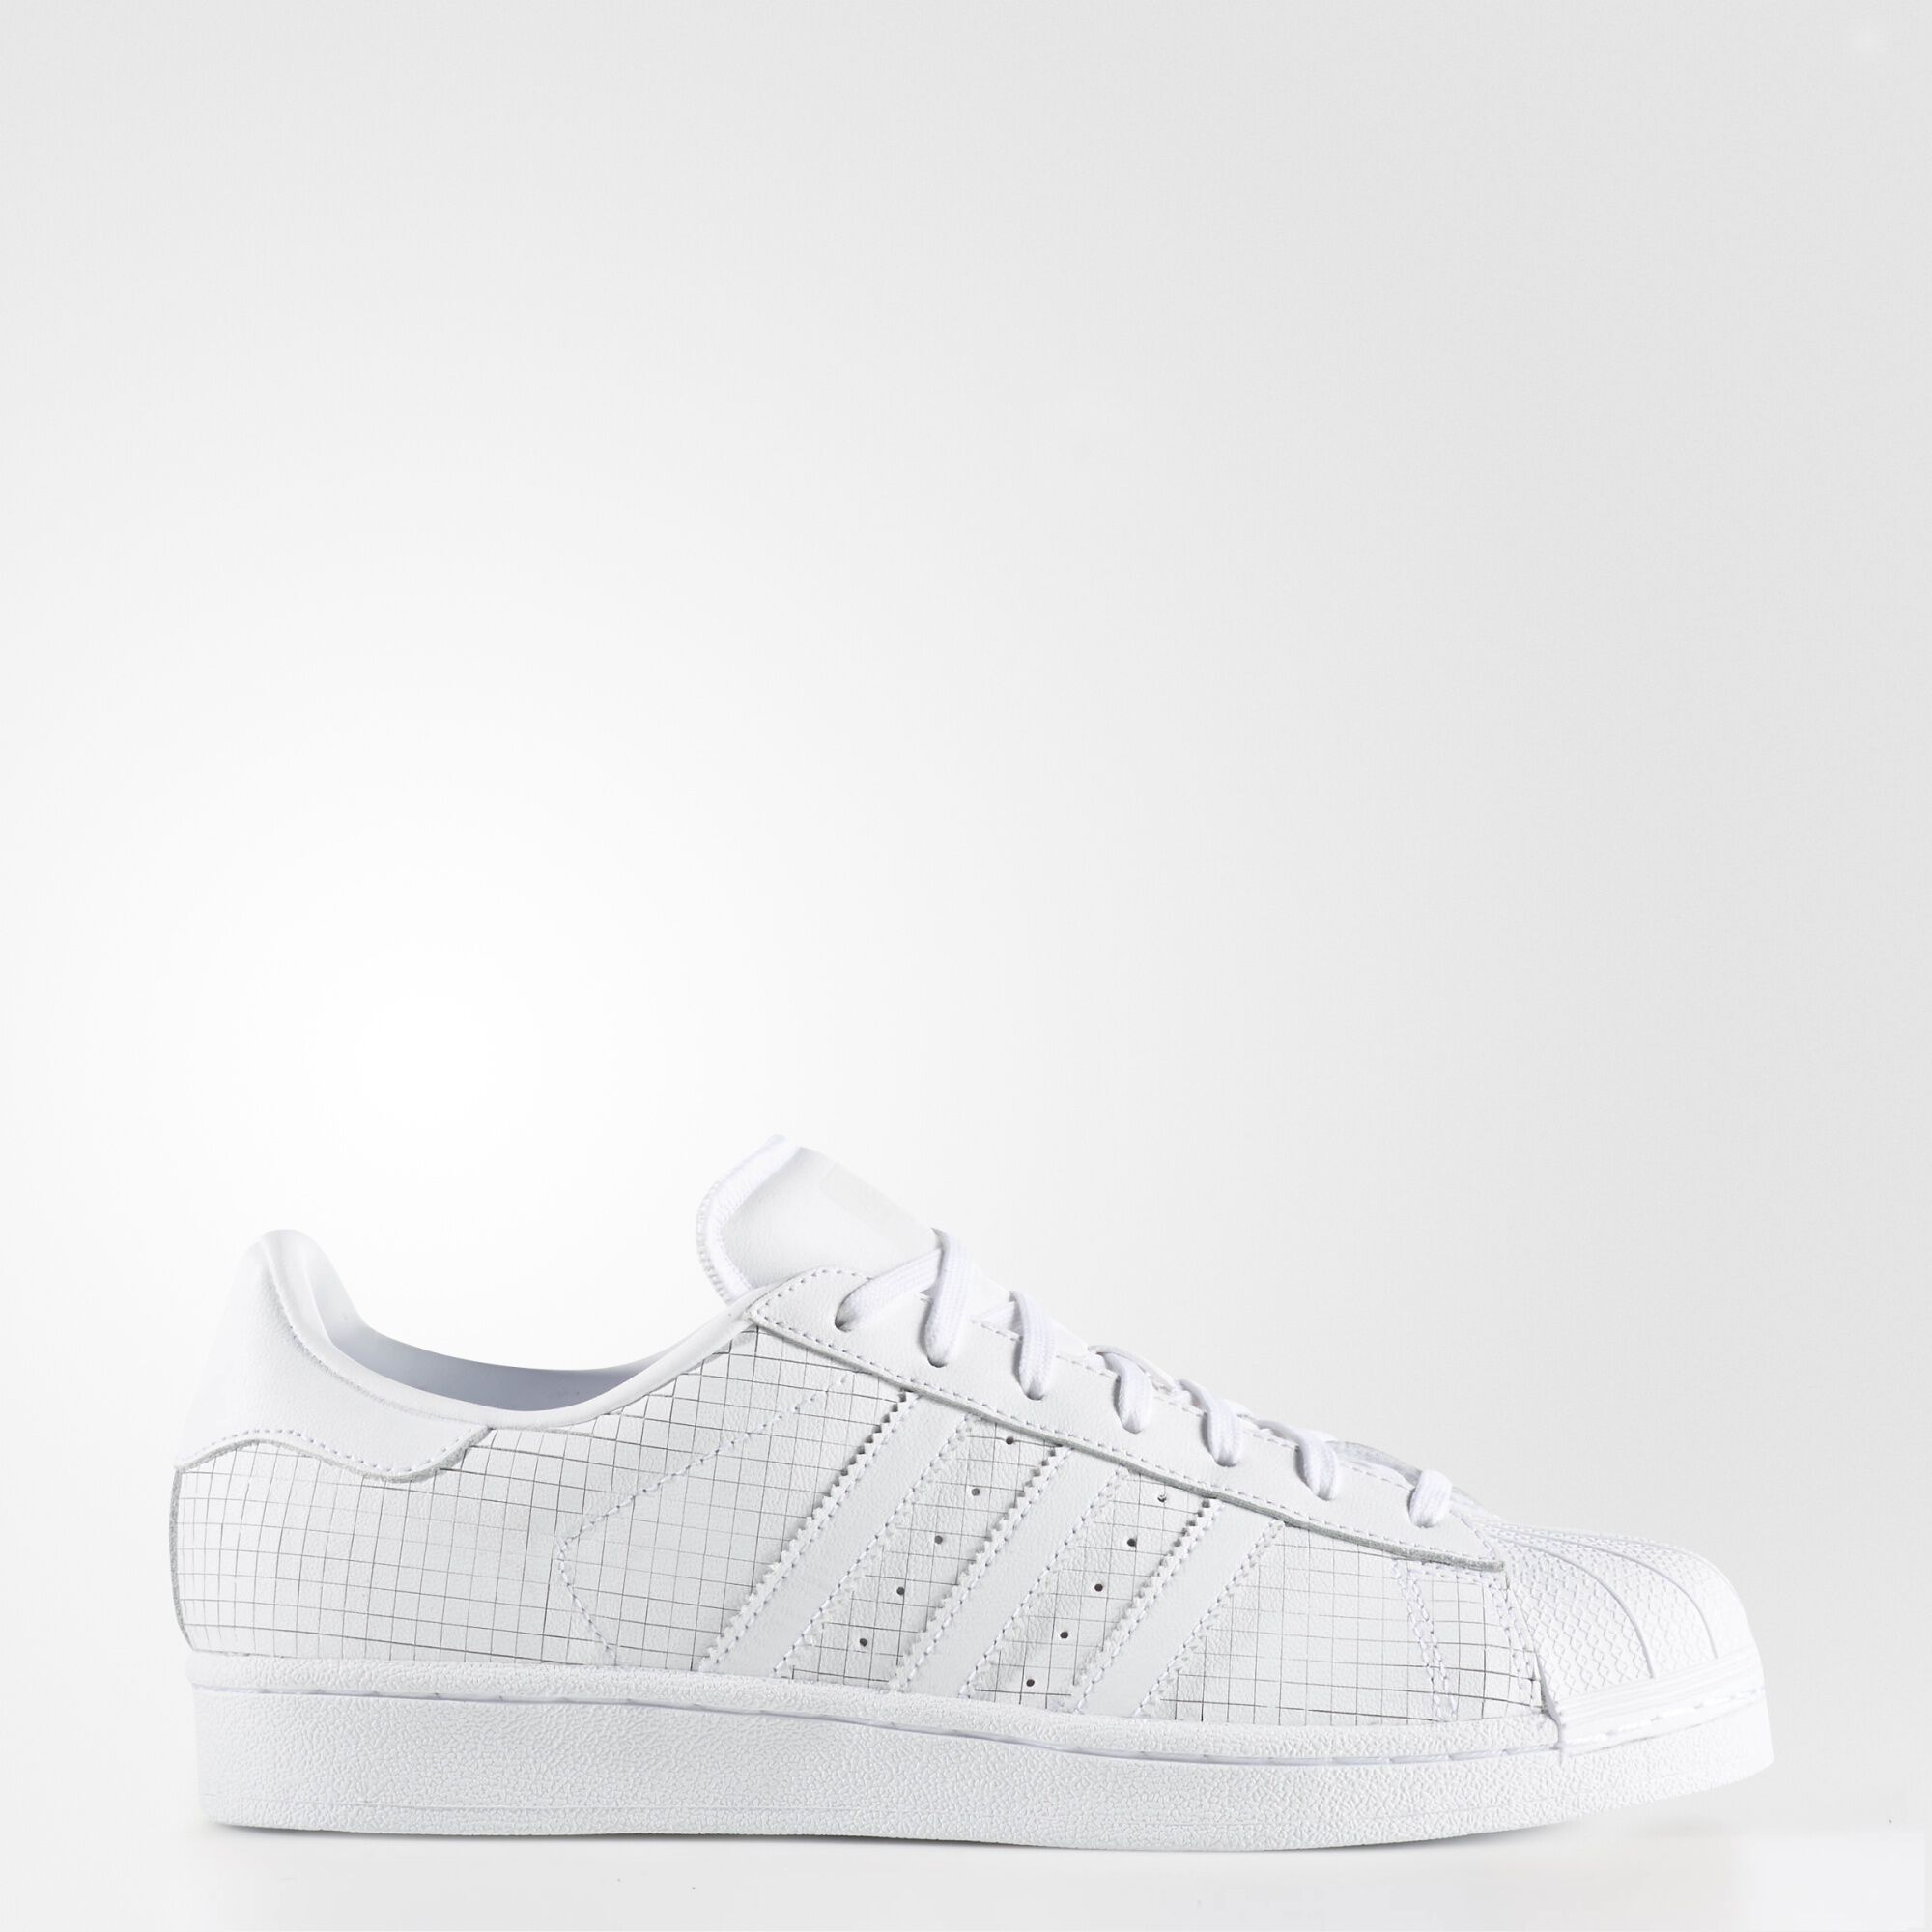 white adidas superstar shoes for women adidas nmd_r1 primeknit white shoes